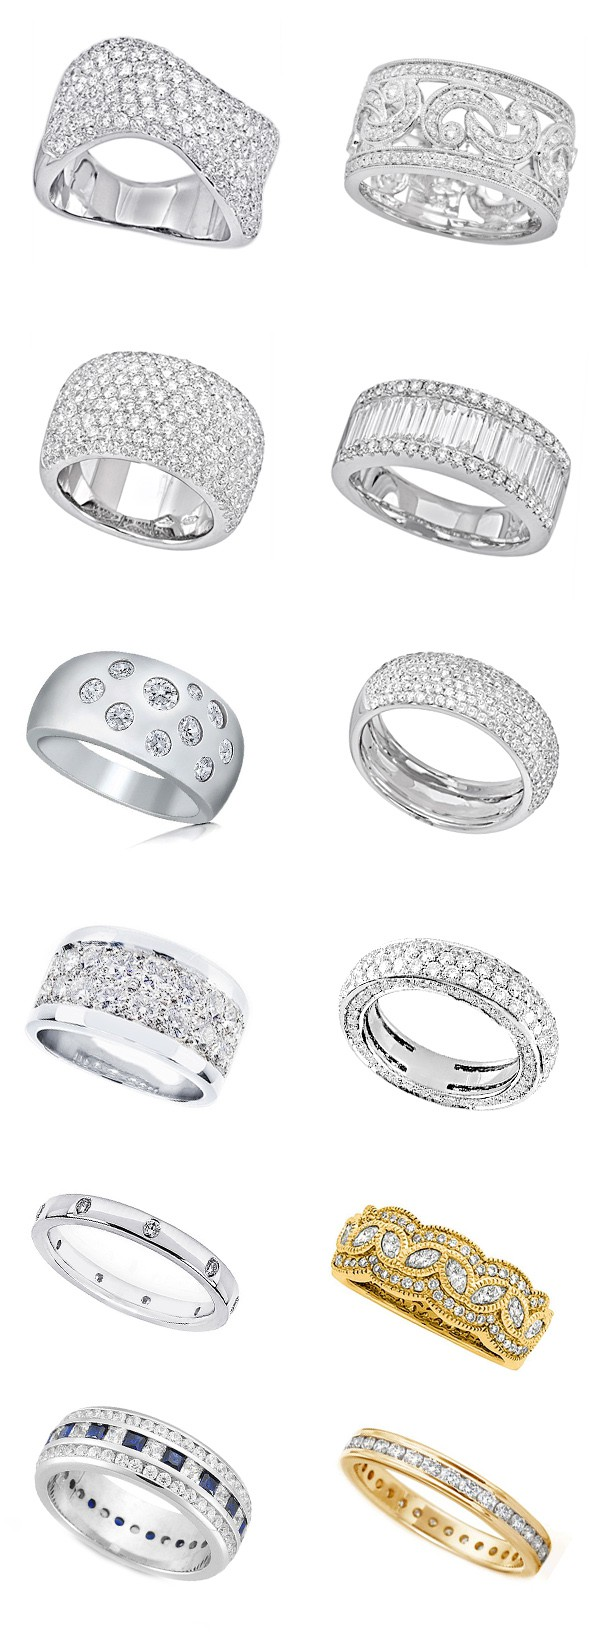 Chula Vista Engagement Rings